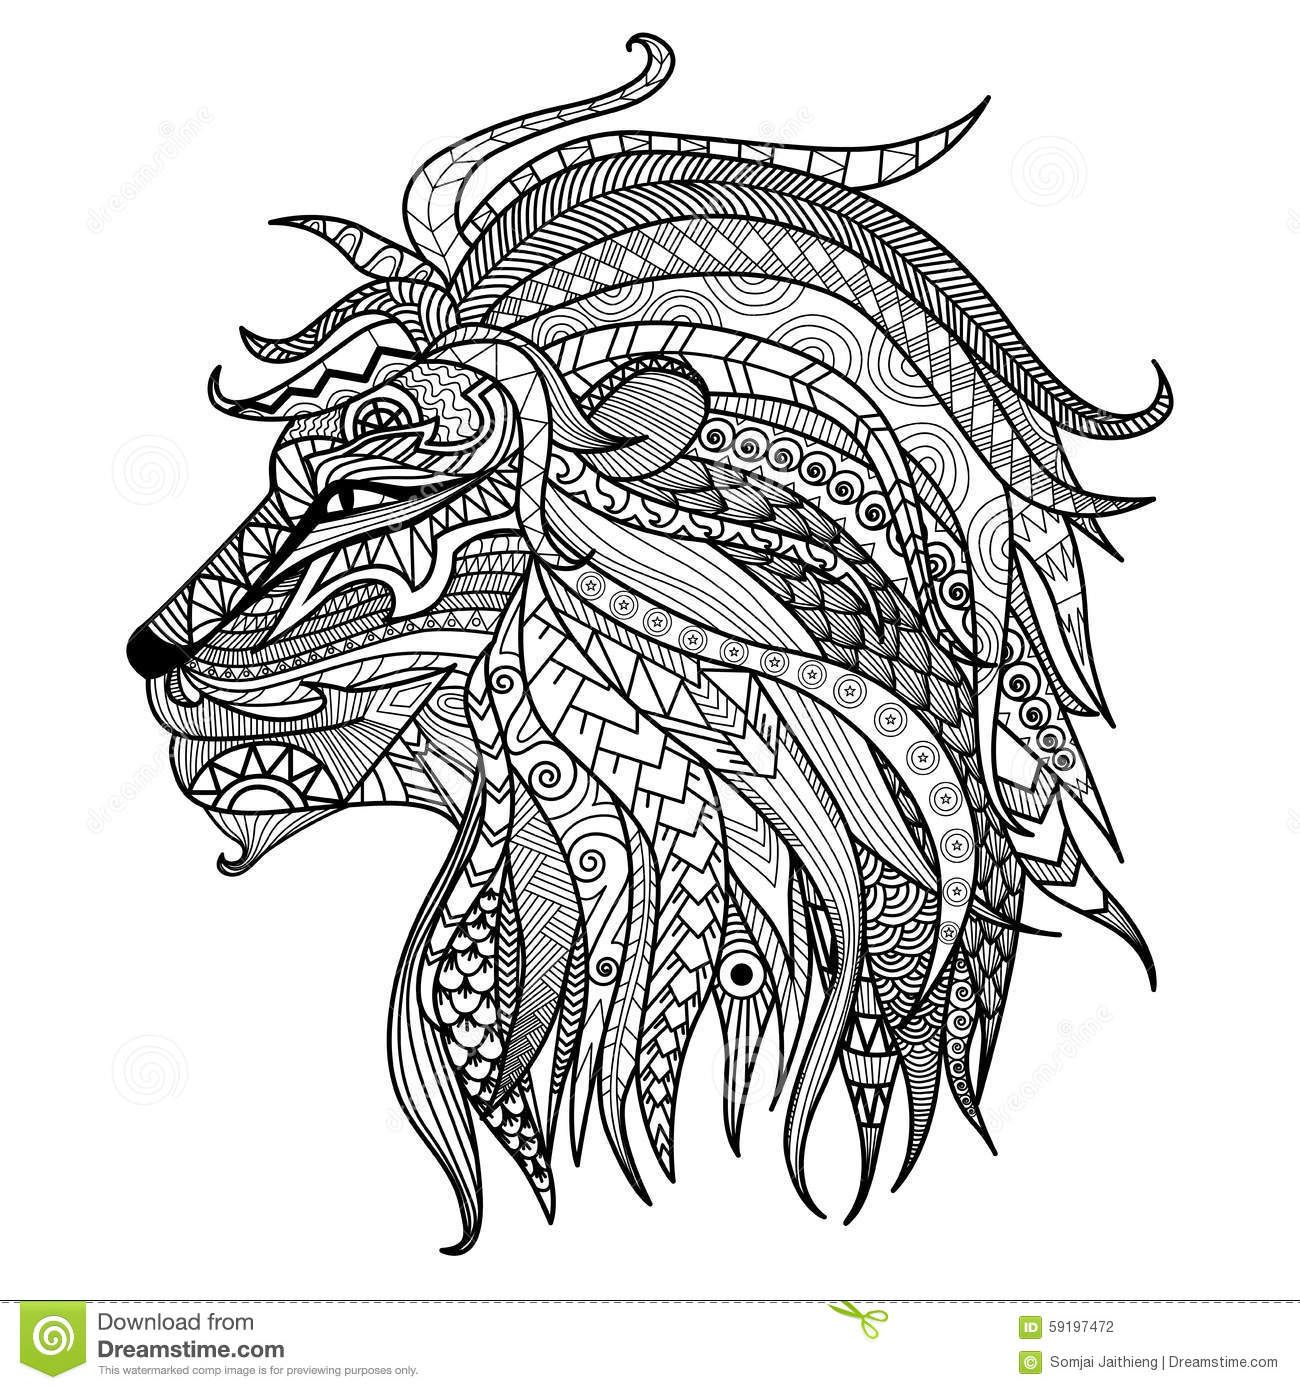 Hand Drawn Lion Coloring Page Download From Over 61 Million